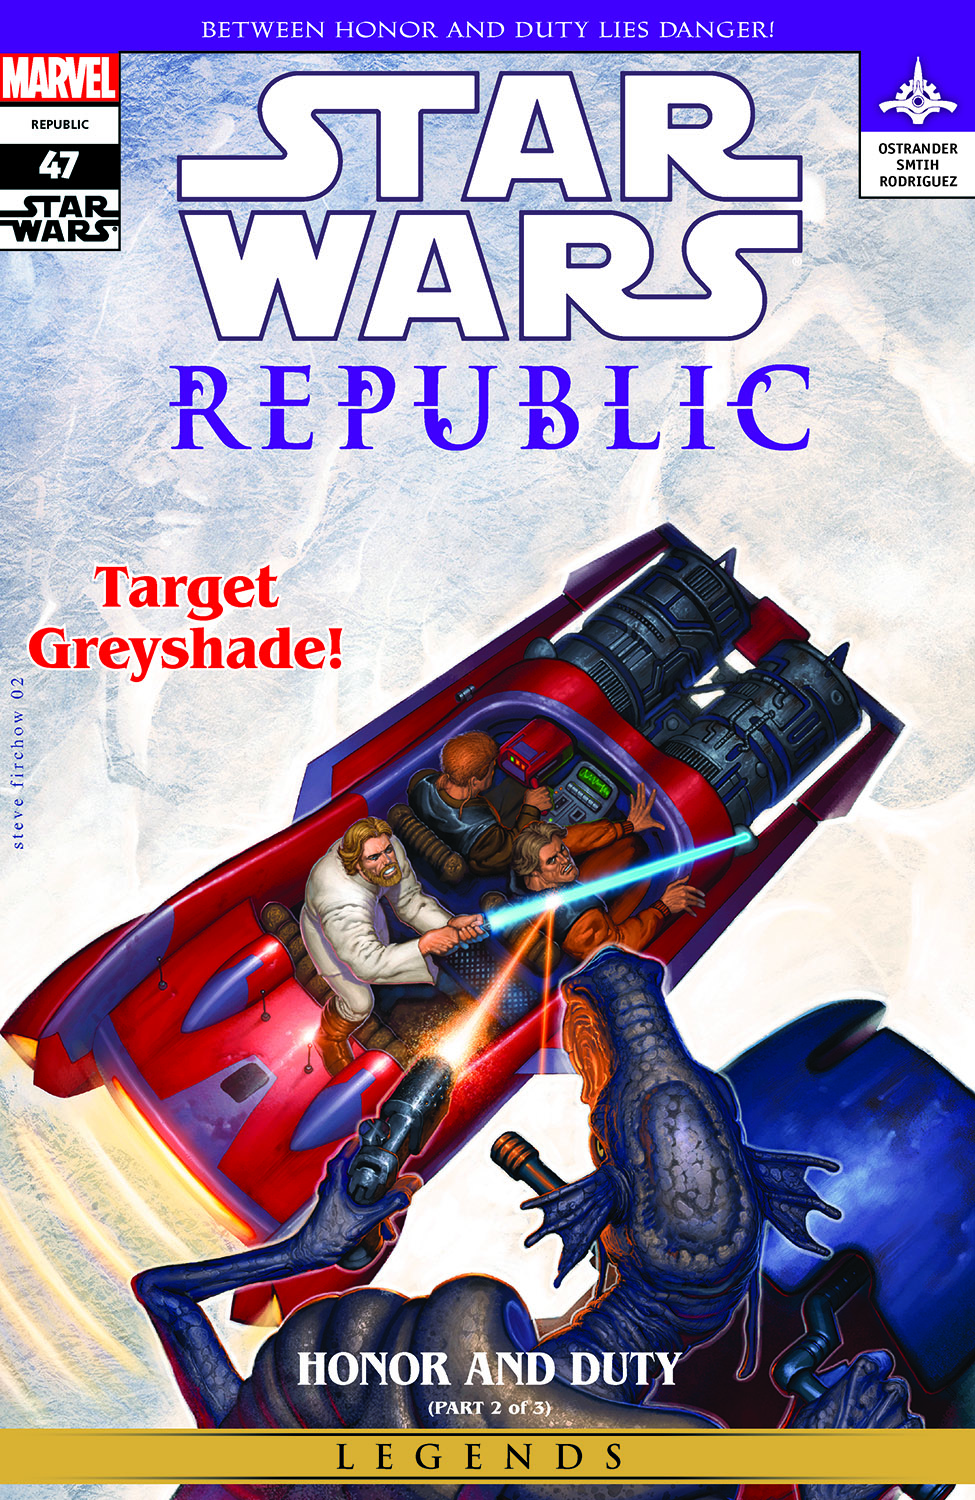 Star Wars: Republic (2002) #47